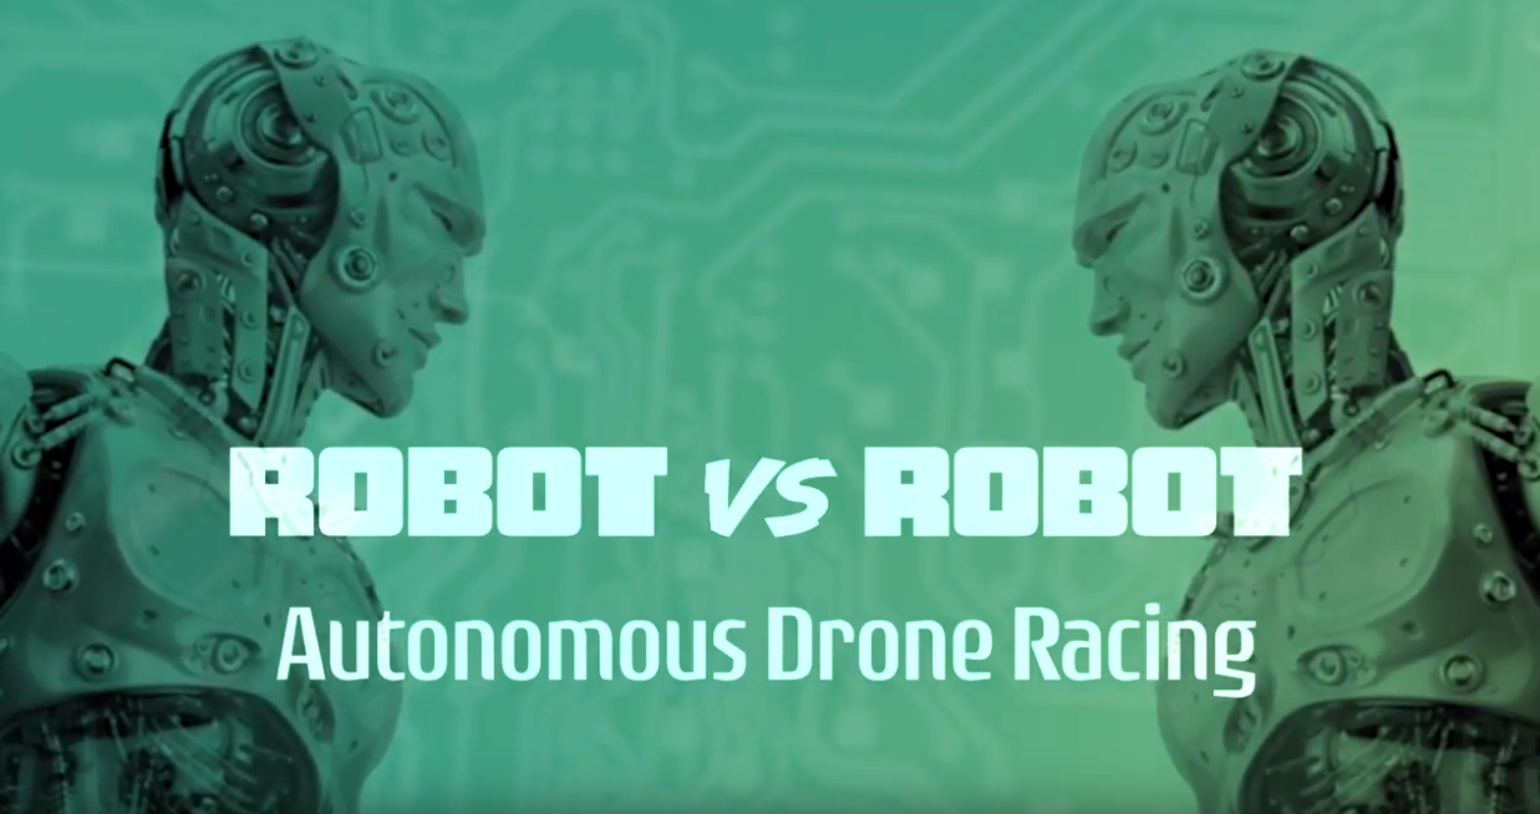 IROS TV 2019- Robot vs. Robot- Autonomous Drone Racing